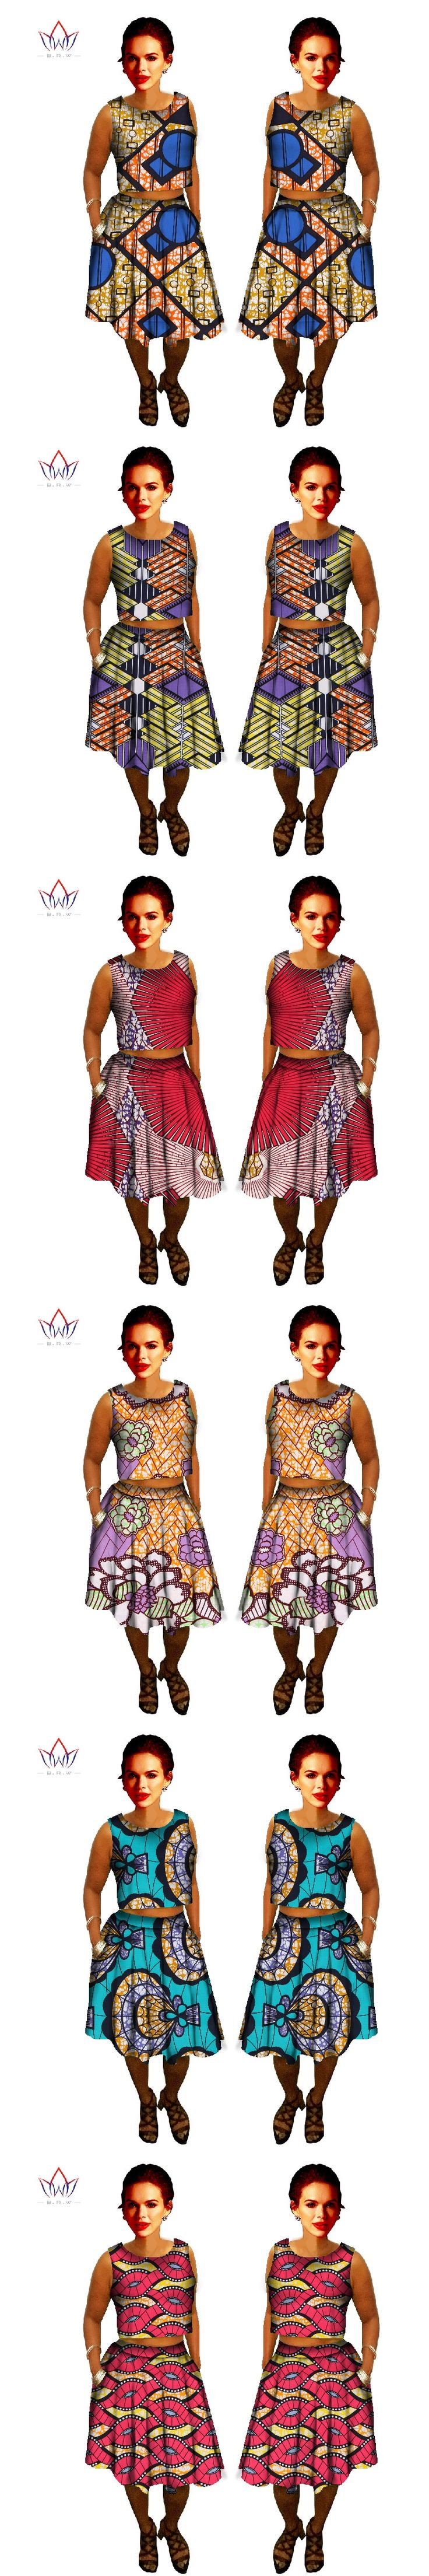 2 Piece Set Women African Clothing Bazin Wax African Print Skirt Plus Size African Clothing Crop Top and Skirt Dashiki BRW Y328